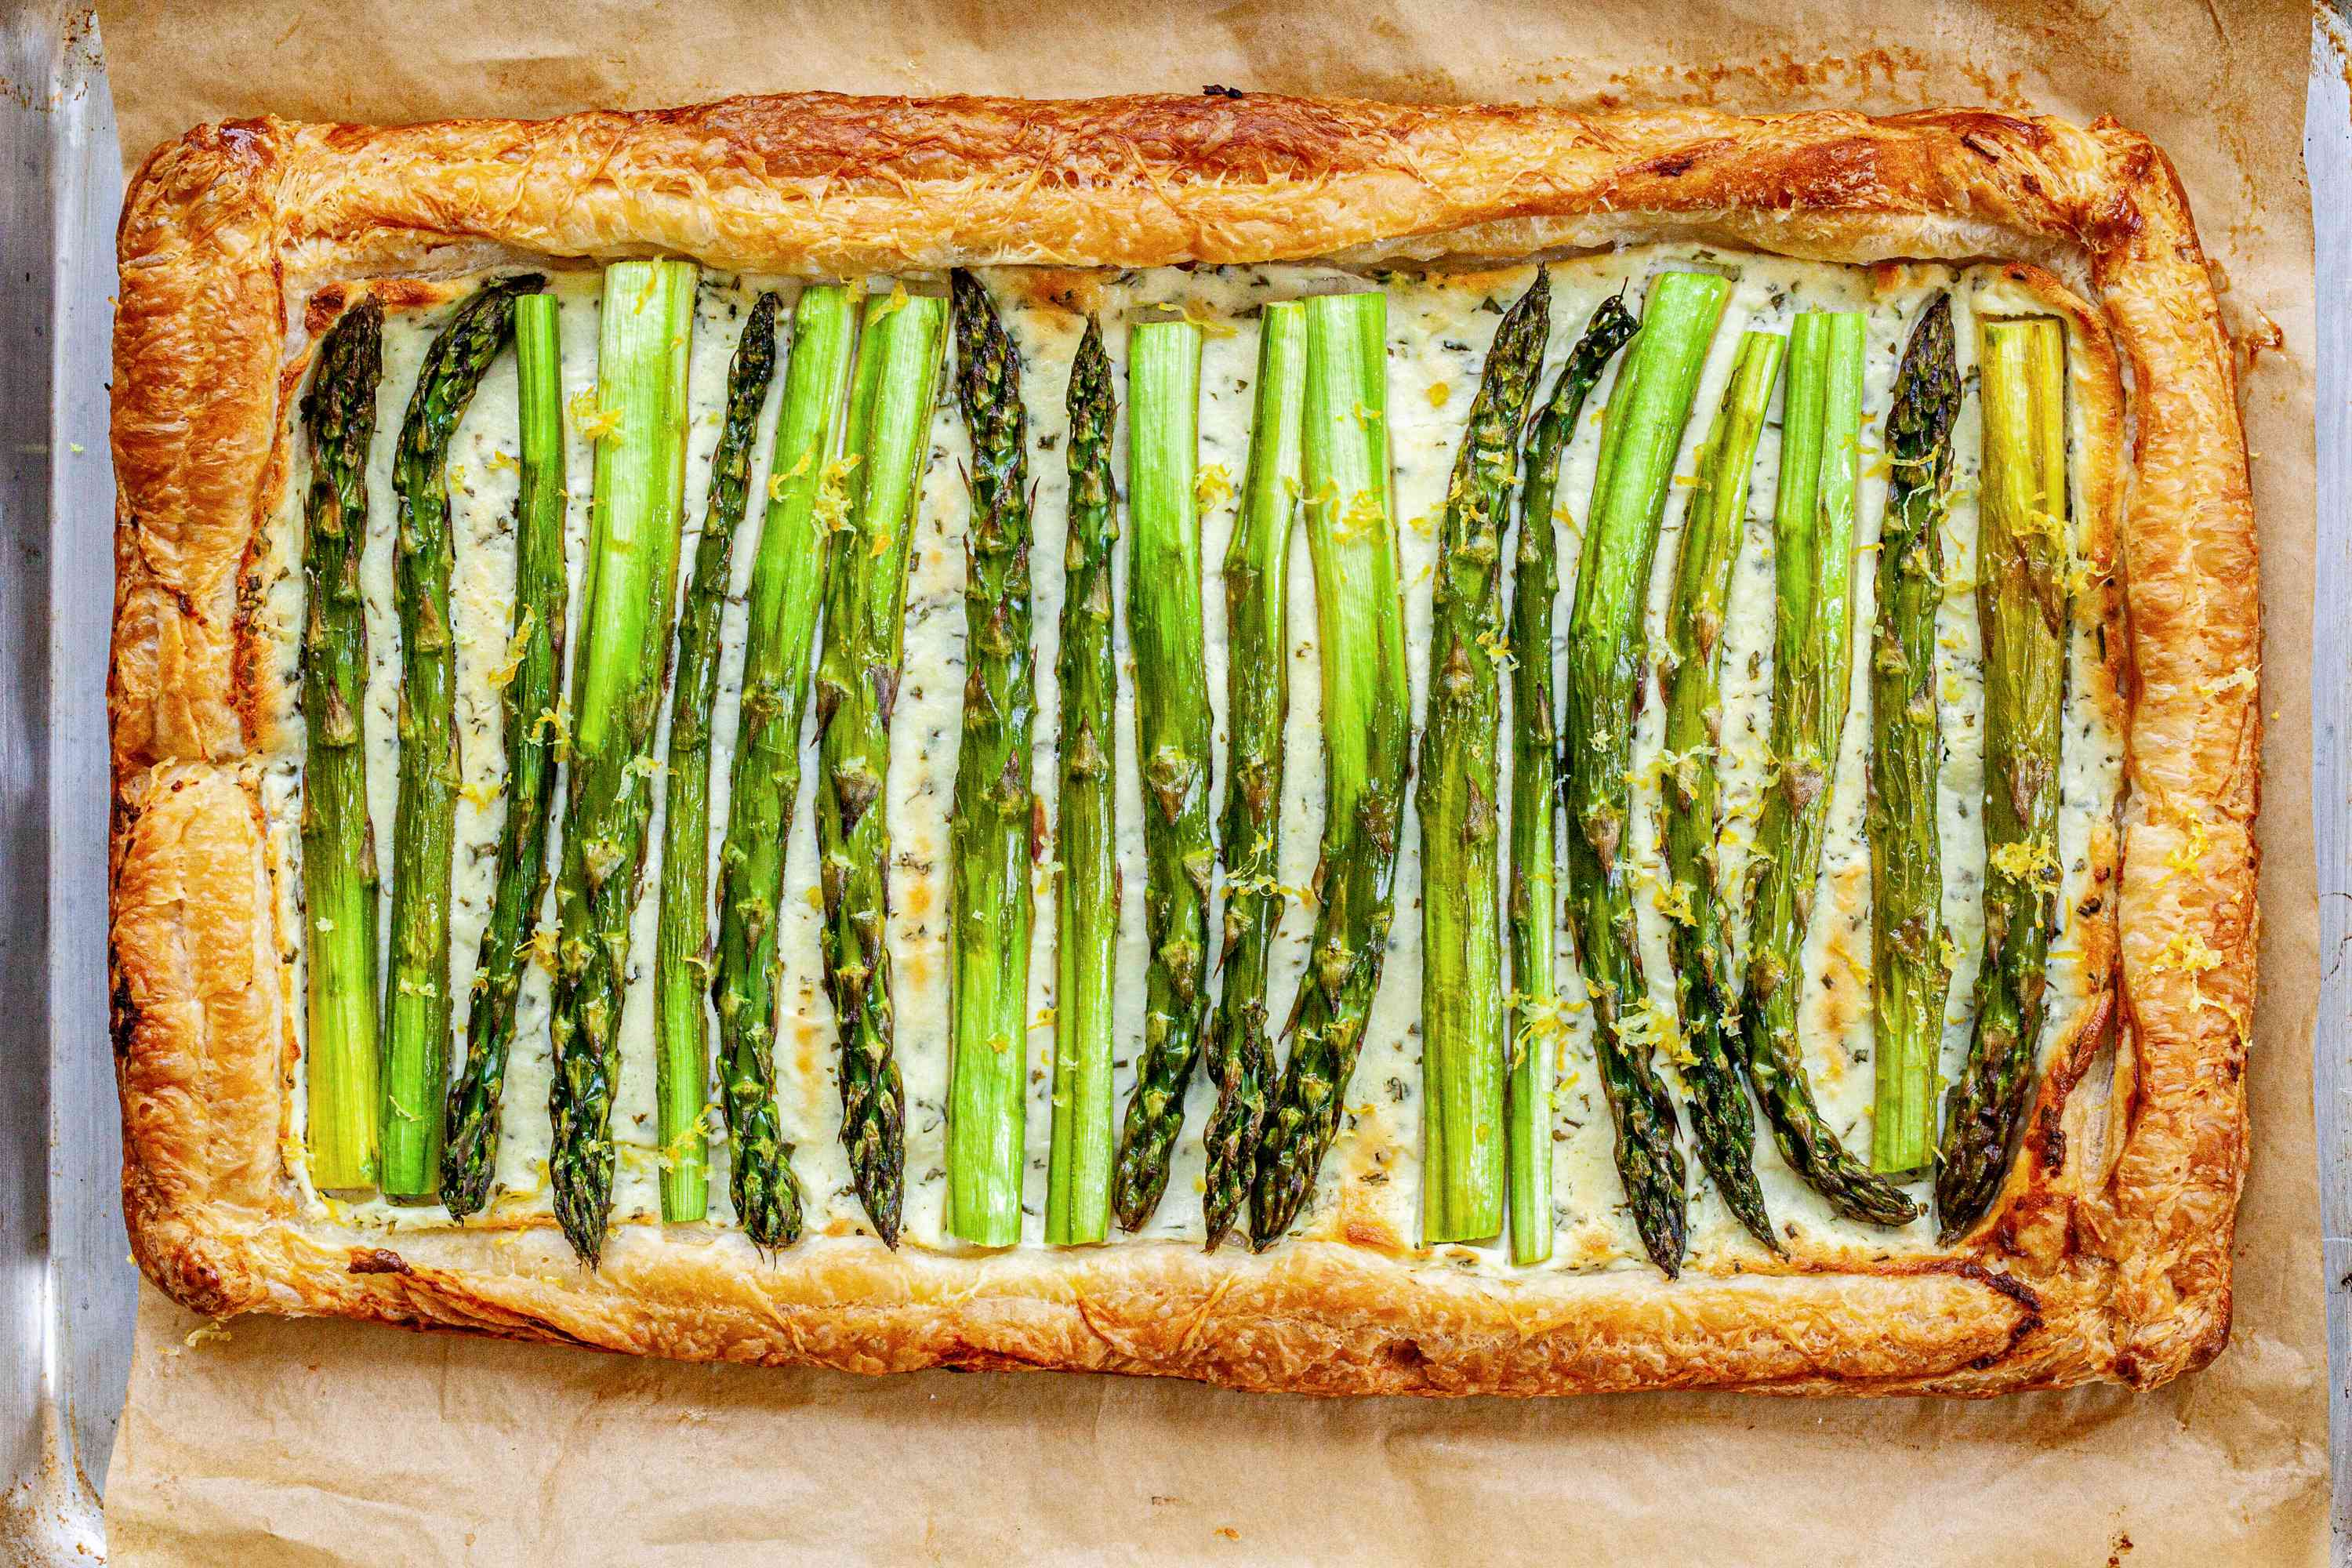 Asparagus Tart with Goat Cheese and Lemon baked and on a piece of parchment paper.